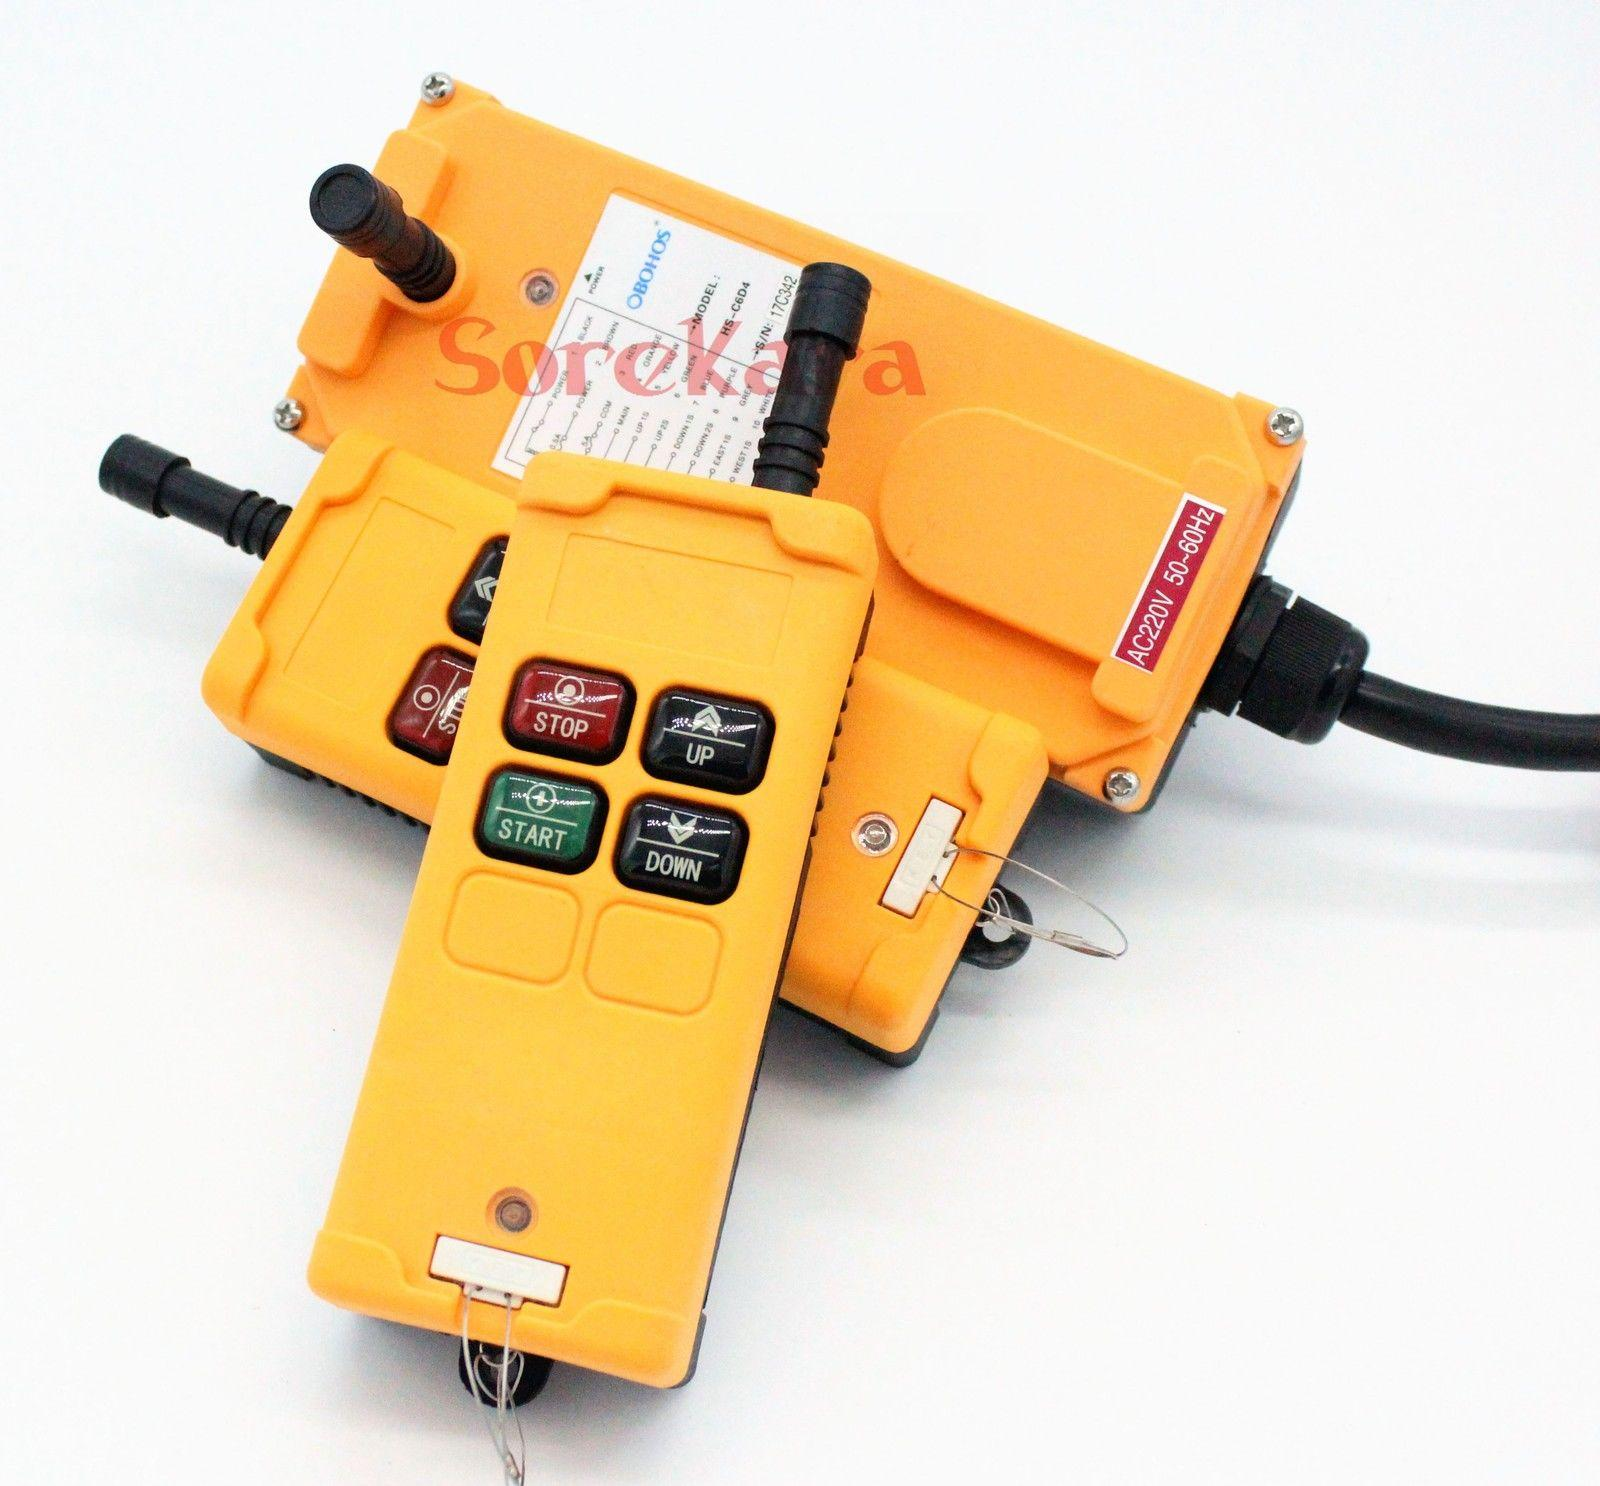 ALL VOLTAGES 1 Speed 4 Channels 2 Transmitters Hoist Crane Truck Radio Remote System Controller 2 speed 2 transmitters 10 channels hoist crane industrial truck radio remote control push button switch system controller